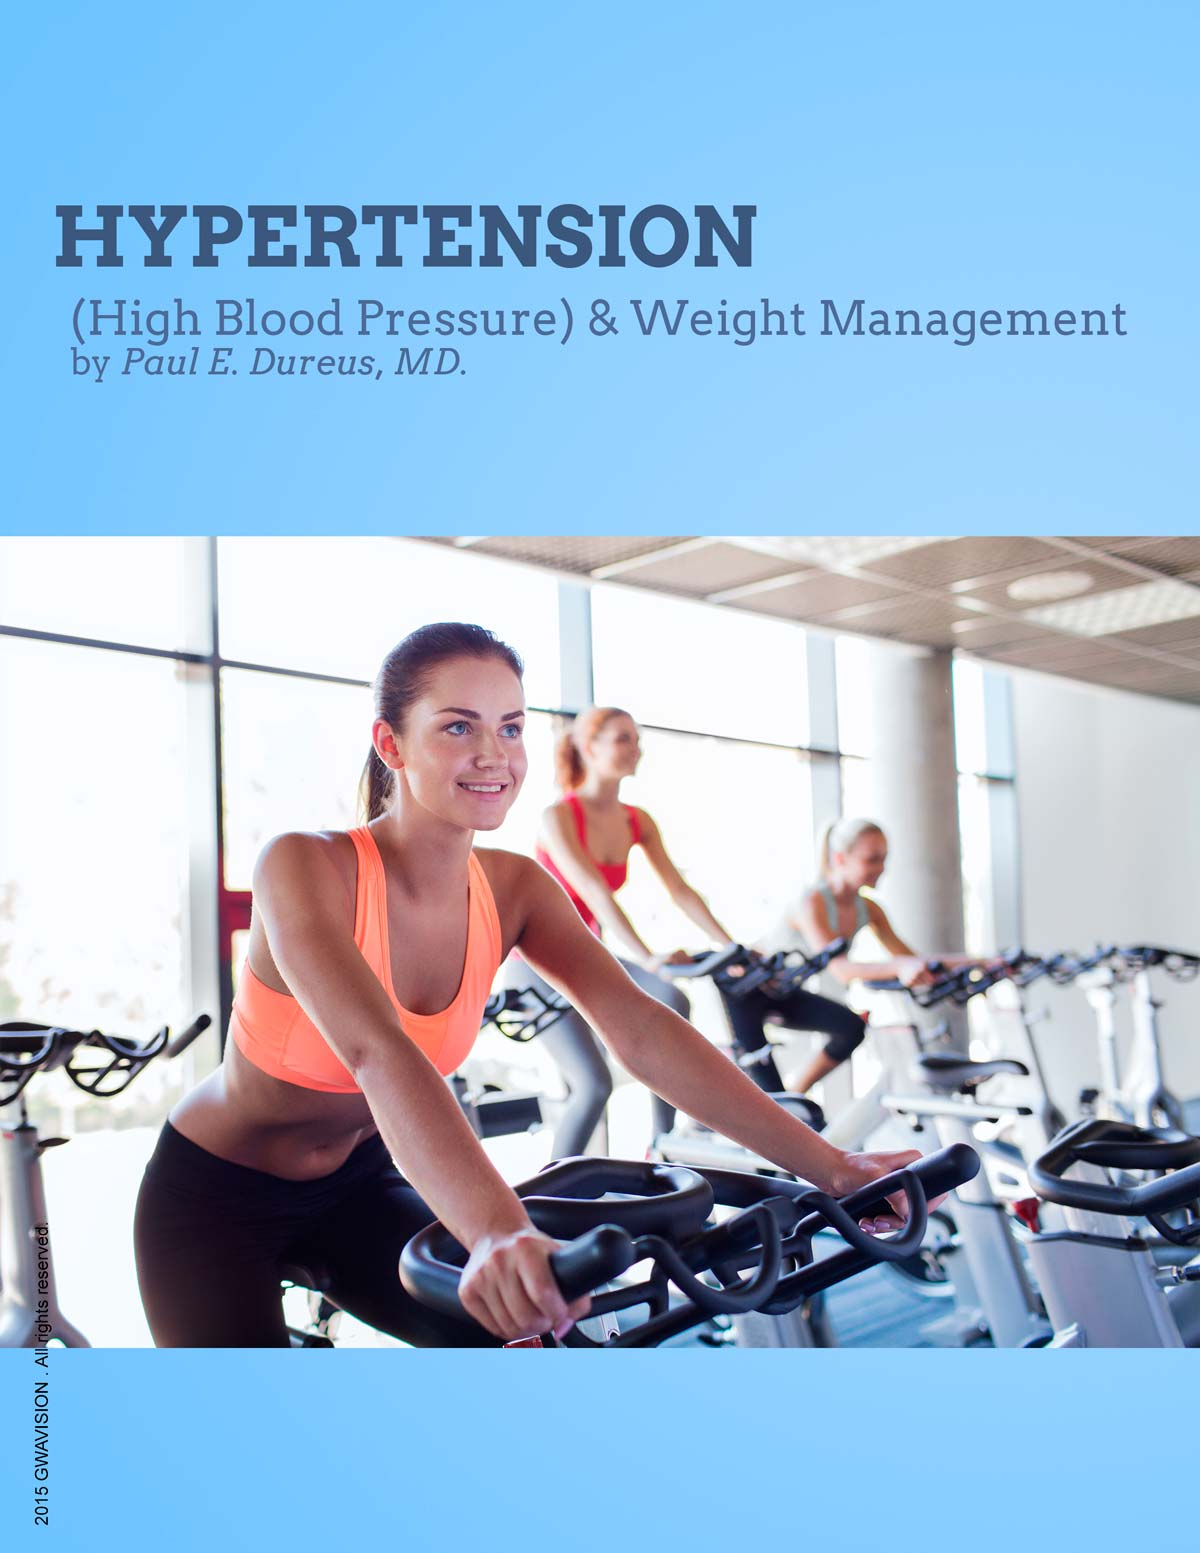 Hypertension-q40-1200